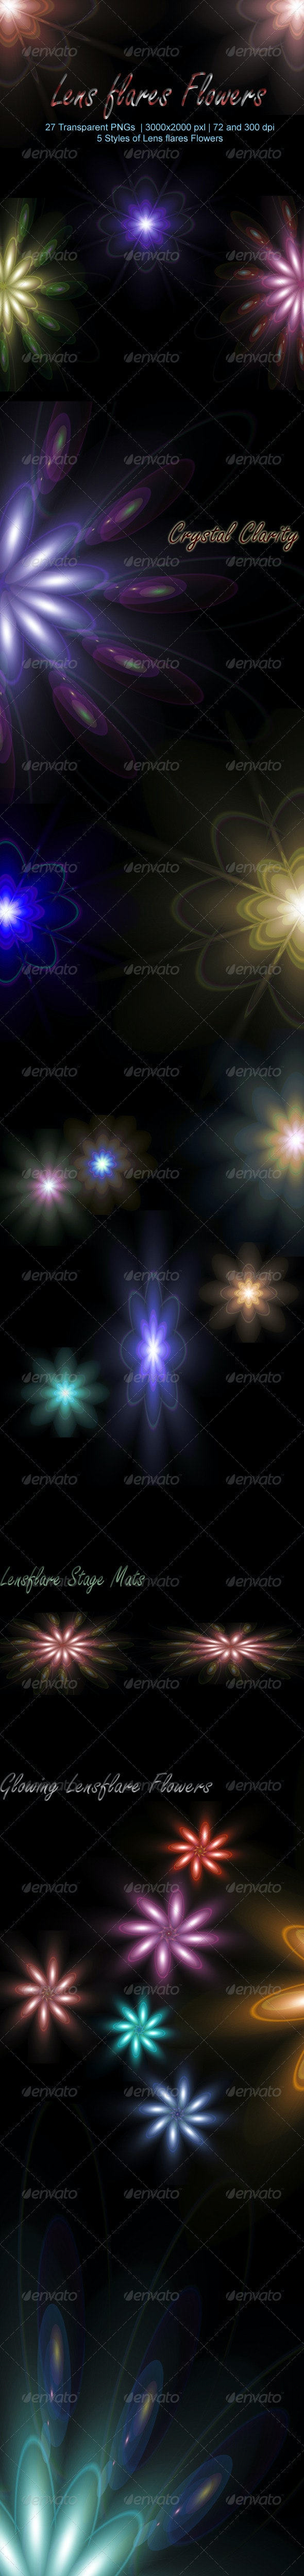 Lens flares Flowers  - Miscellaneous Backgrounds